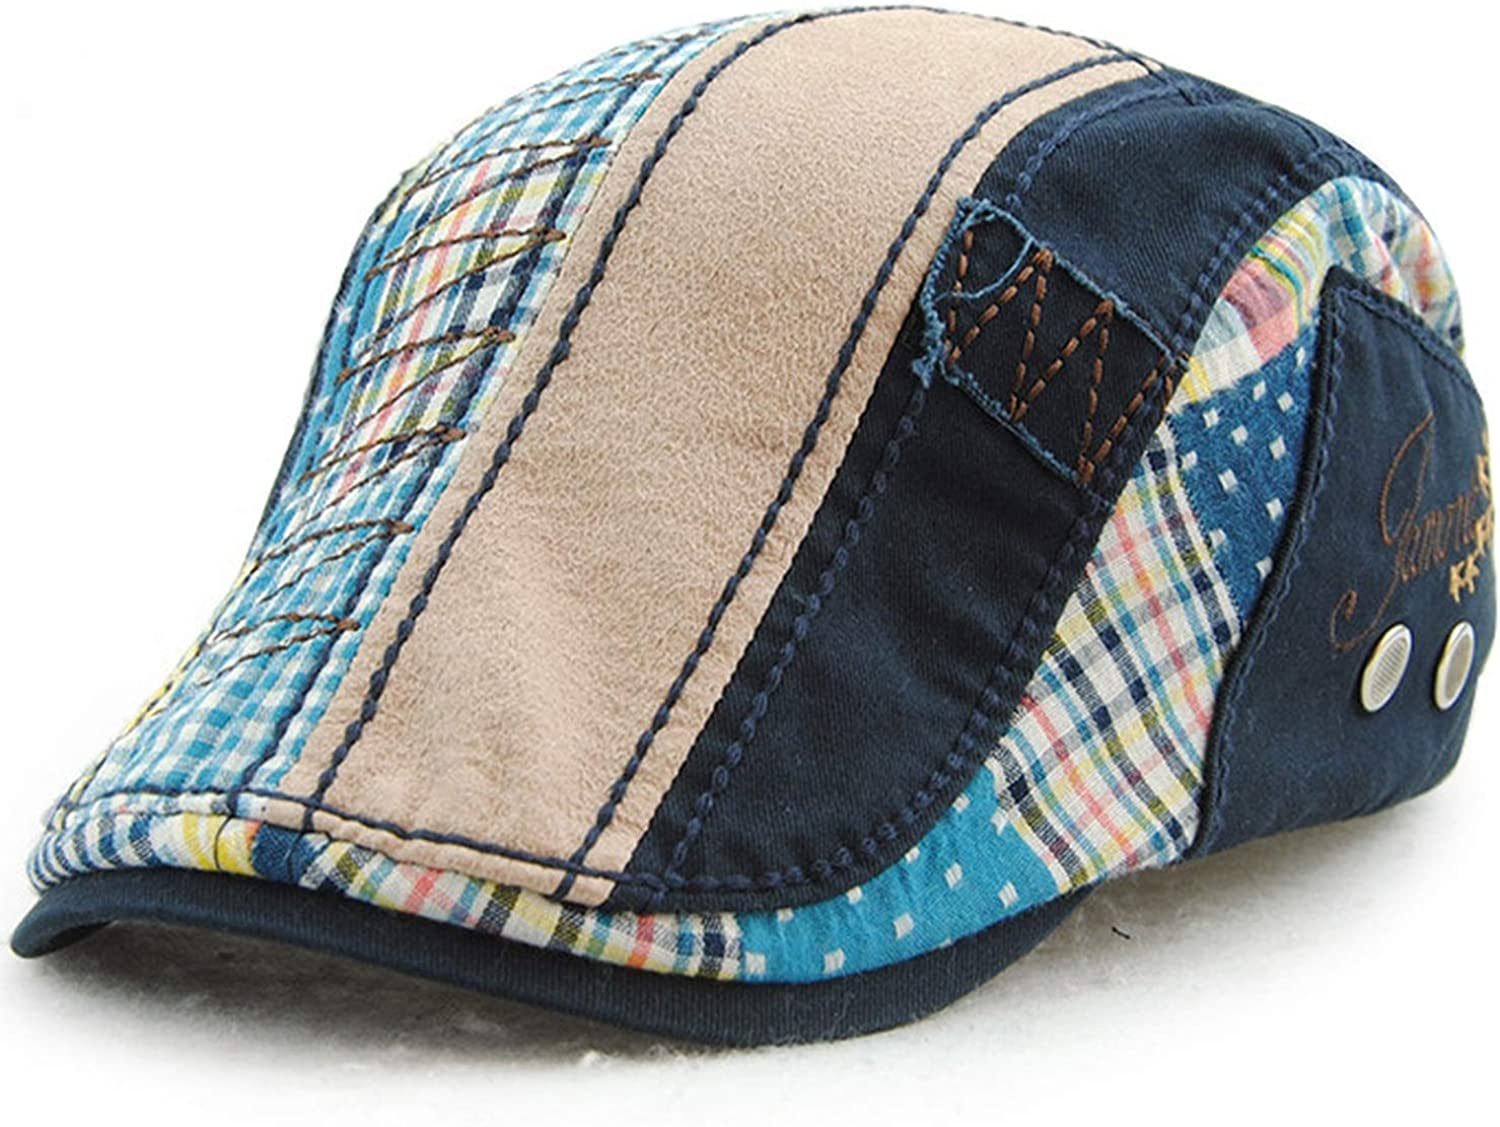 CHENTAI Unisex Casual Patchwork Rushed New Adult Cotton Casquette Boinas Leisure Mens Beret Hats for Cap